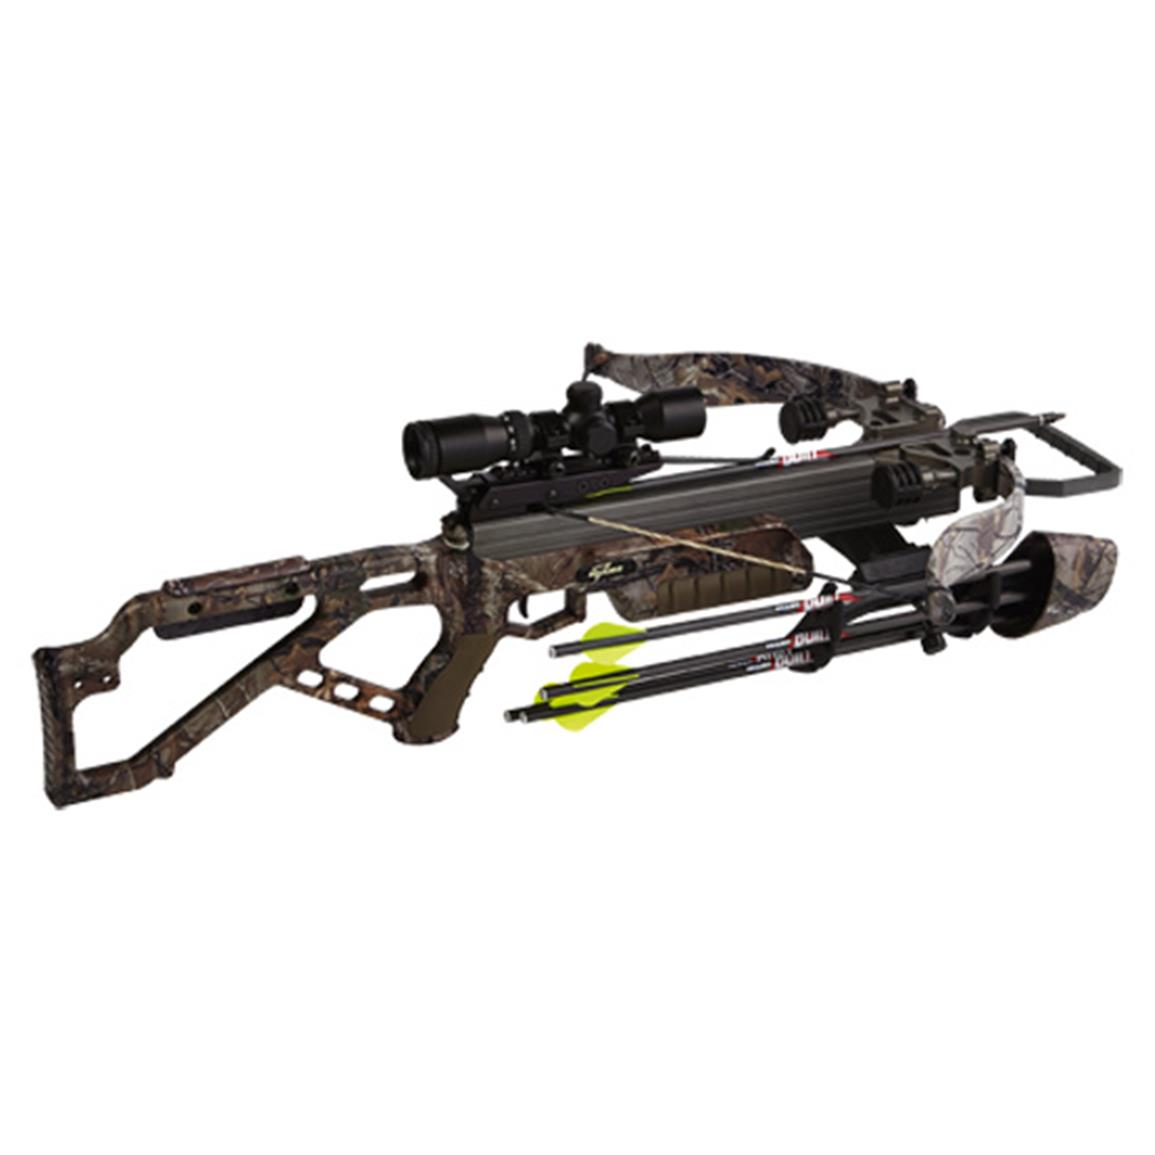 Excalibur Micro 335 Recurve Crossbow Package, Realtree Xtra